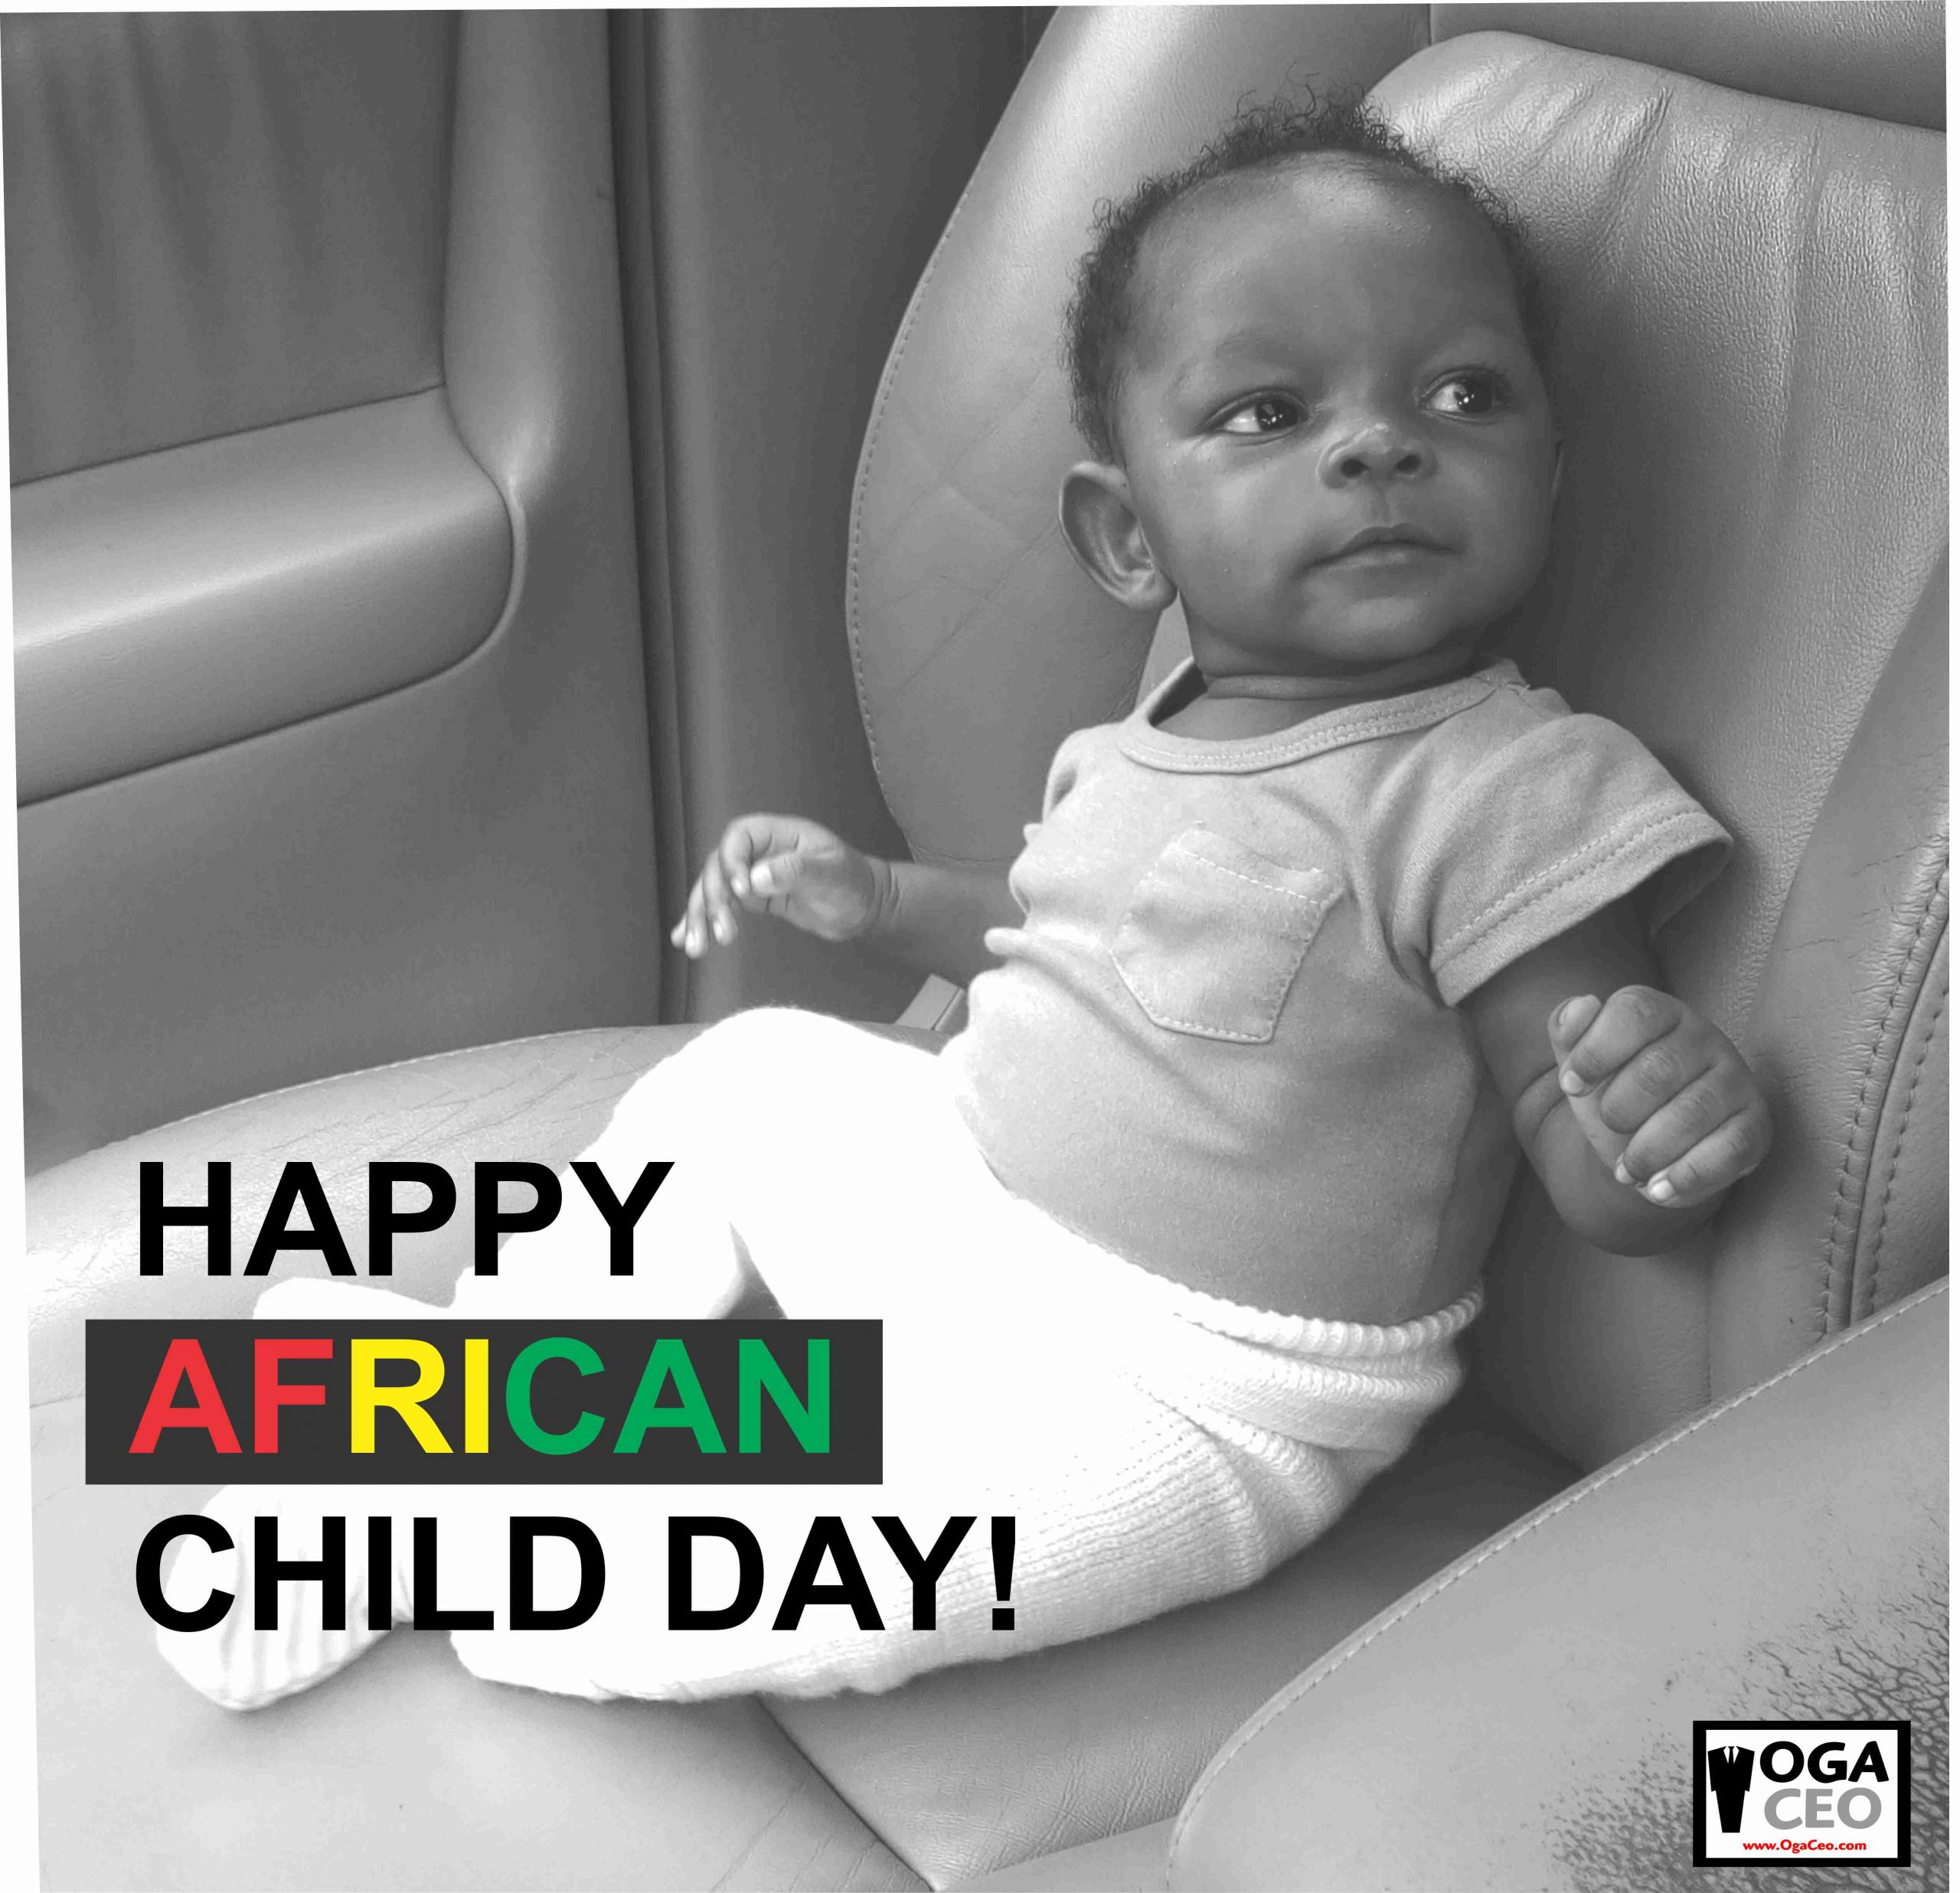 EPISODE 11: AFRICAN CHILD DAY!